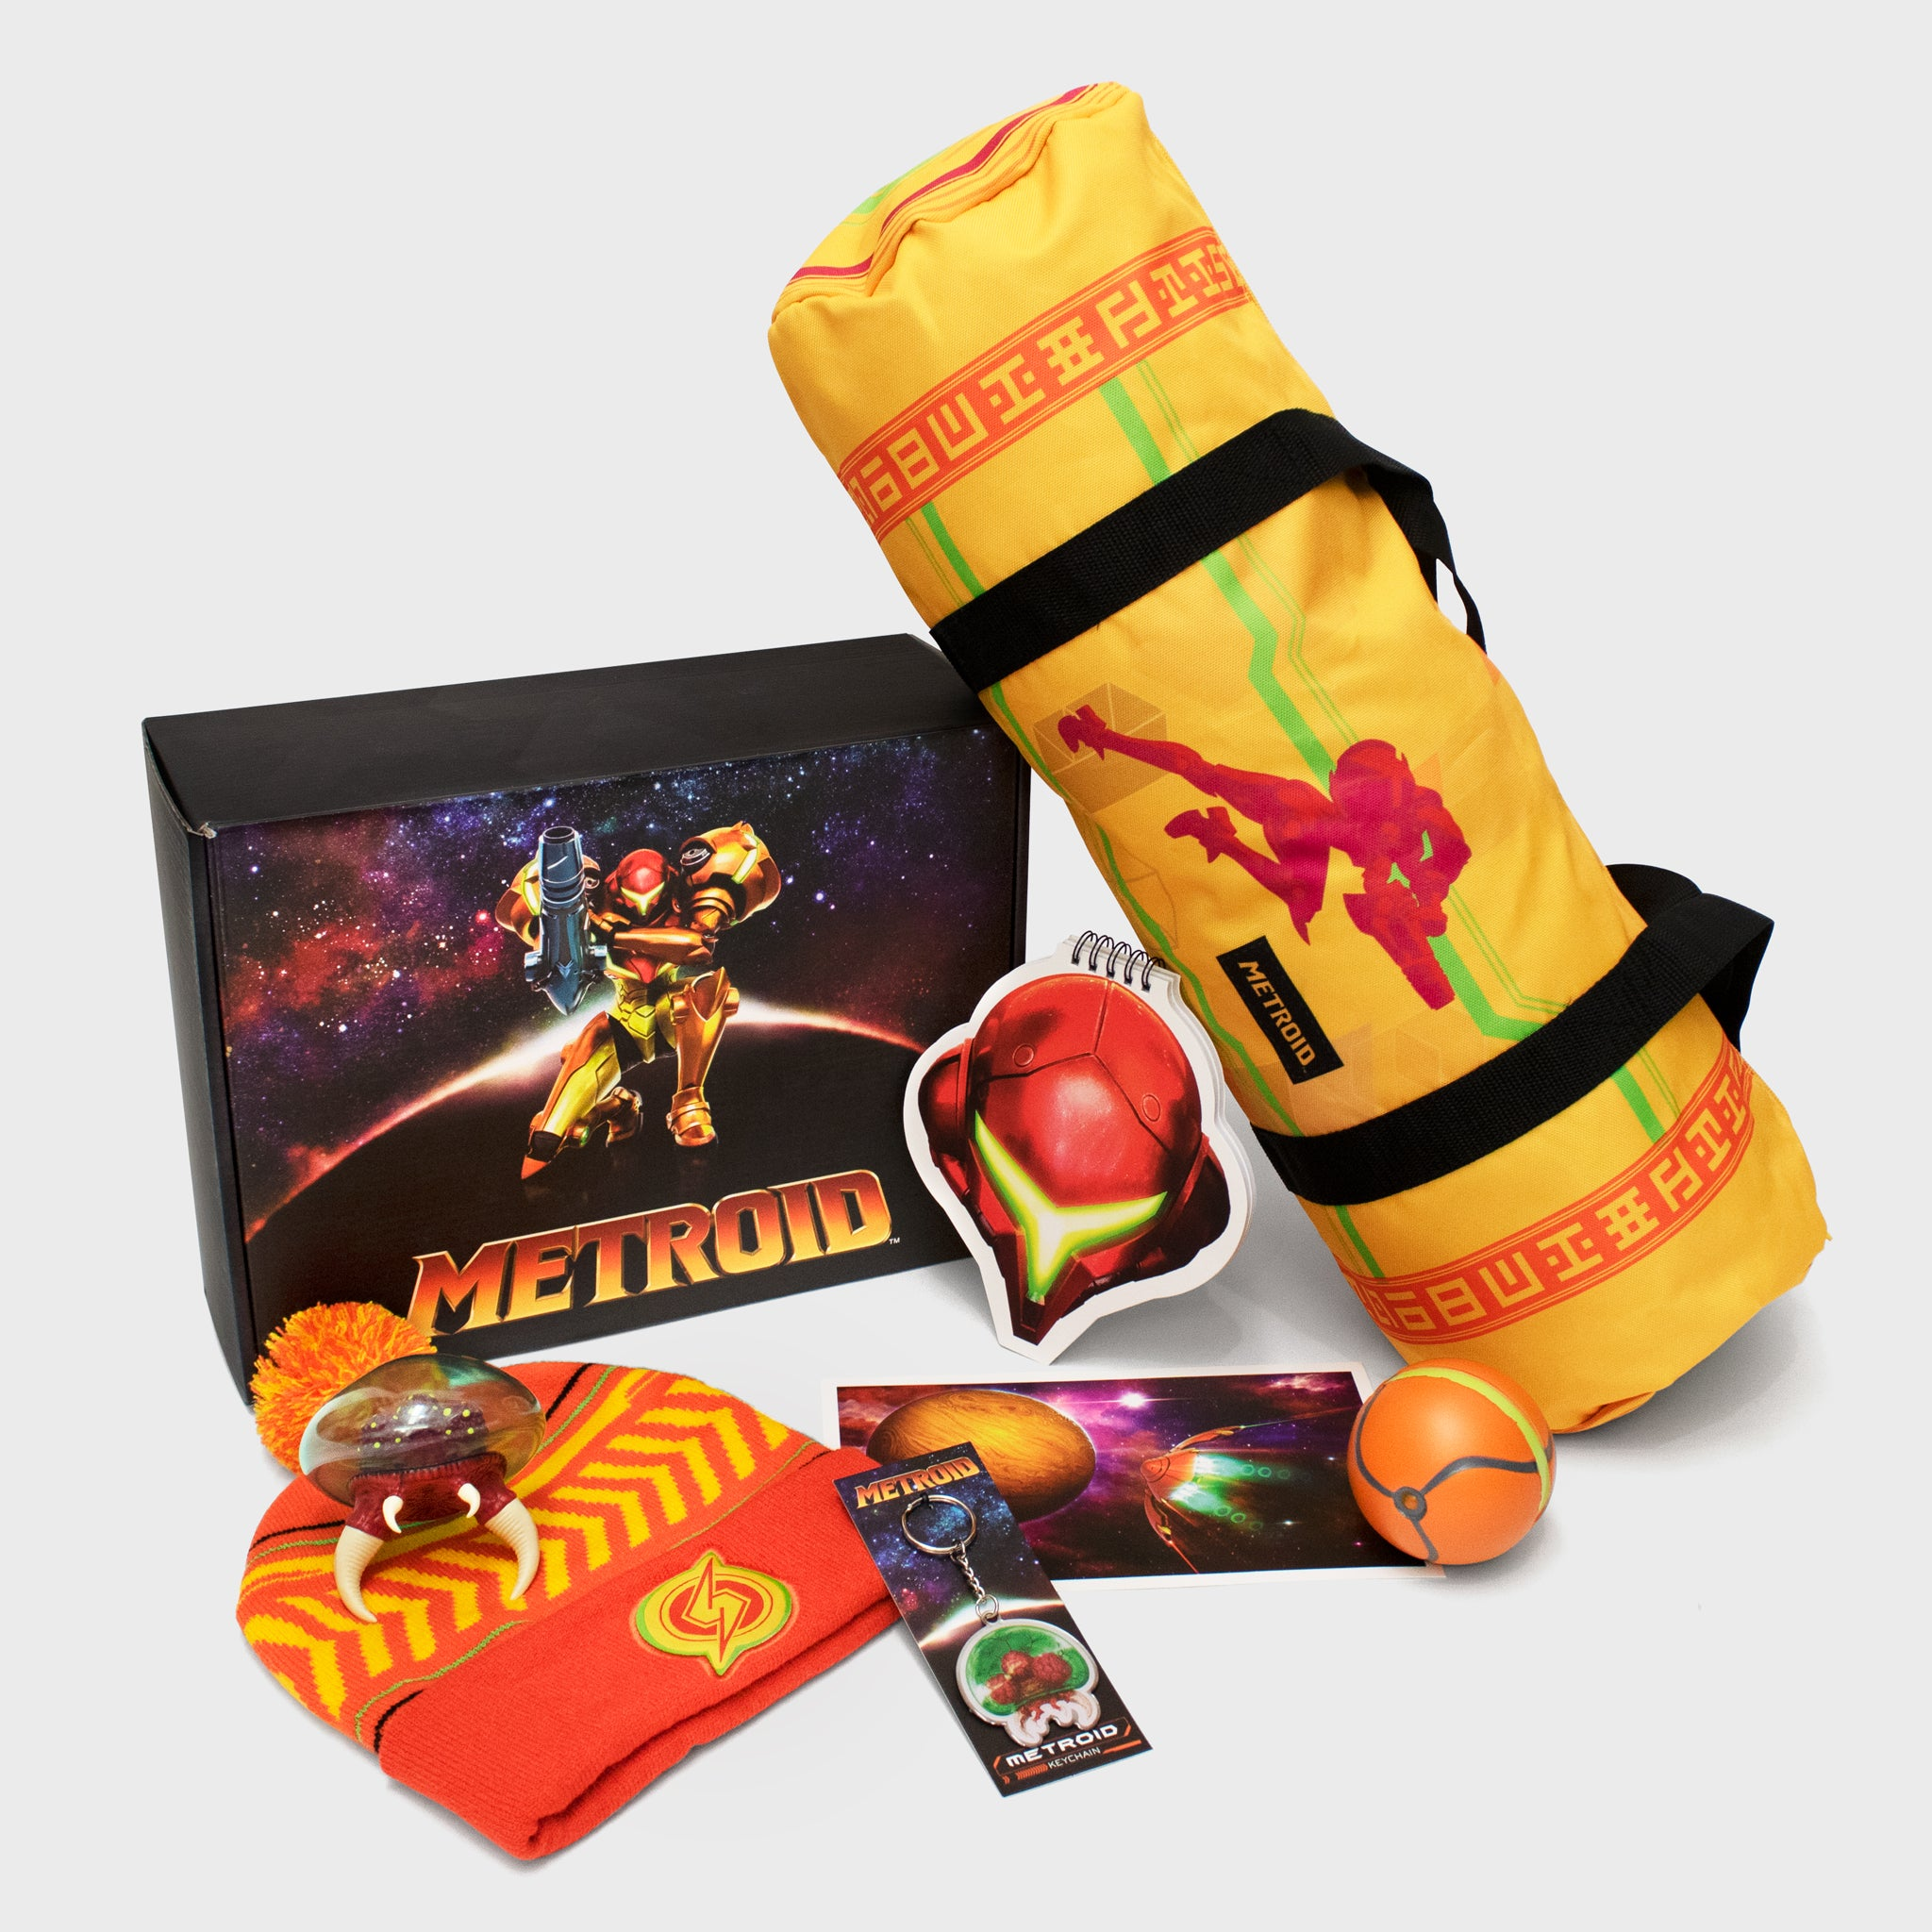 metroid samus aran nintendo video games collectibles exclusive gamestop retail box accessories culturefly